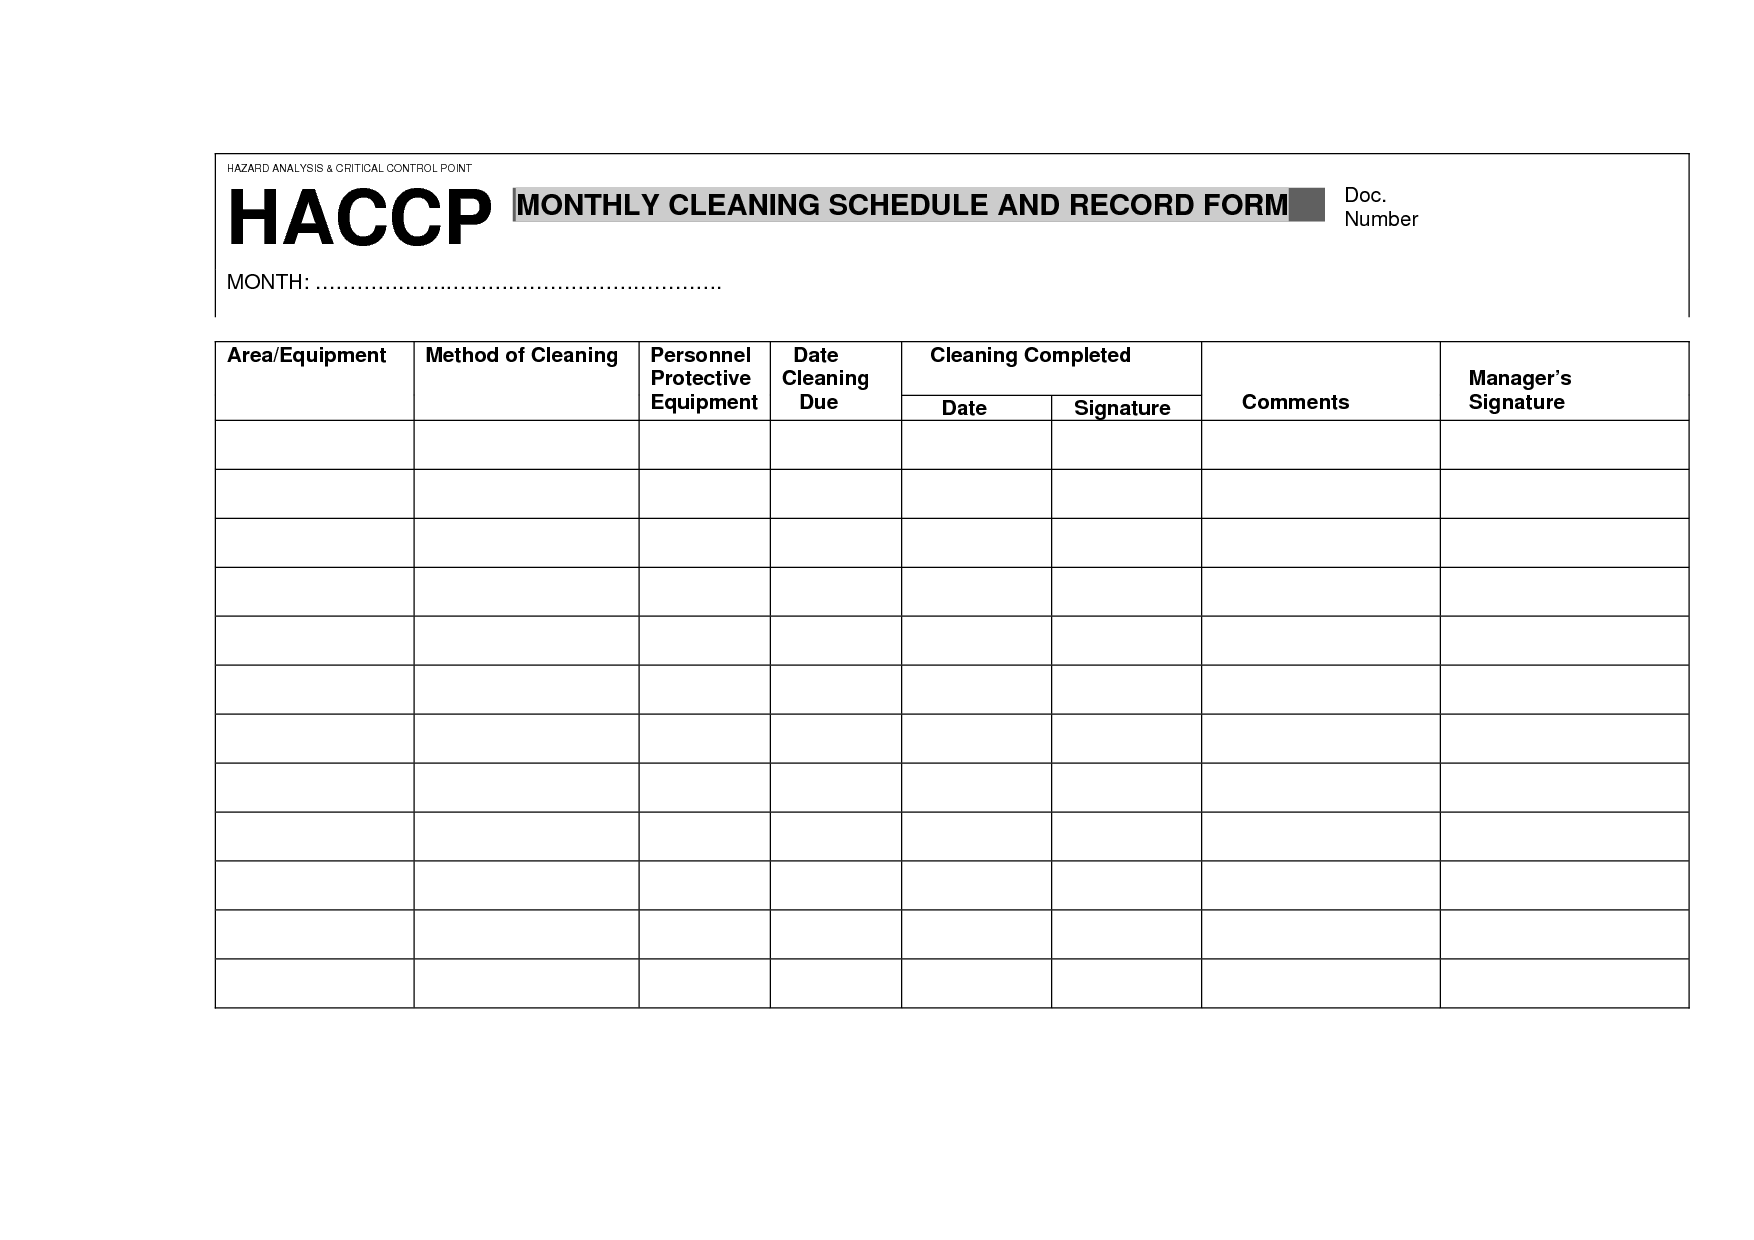 Haccp Daily Cleaning Schedule Record Form